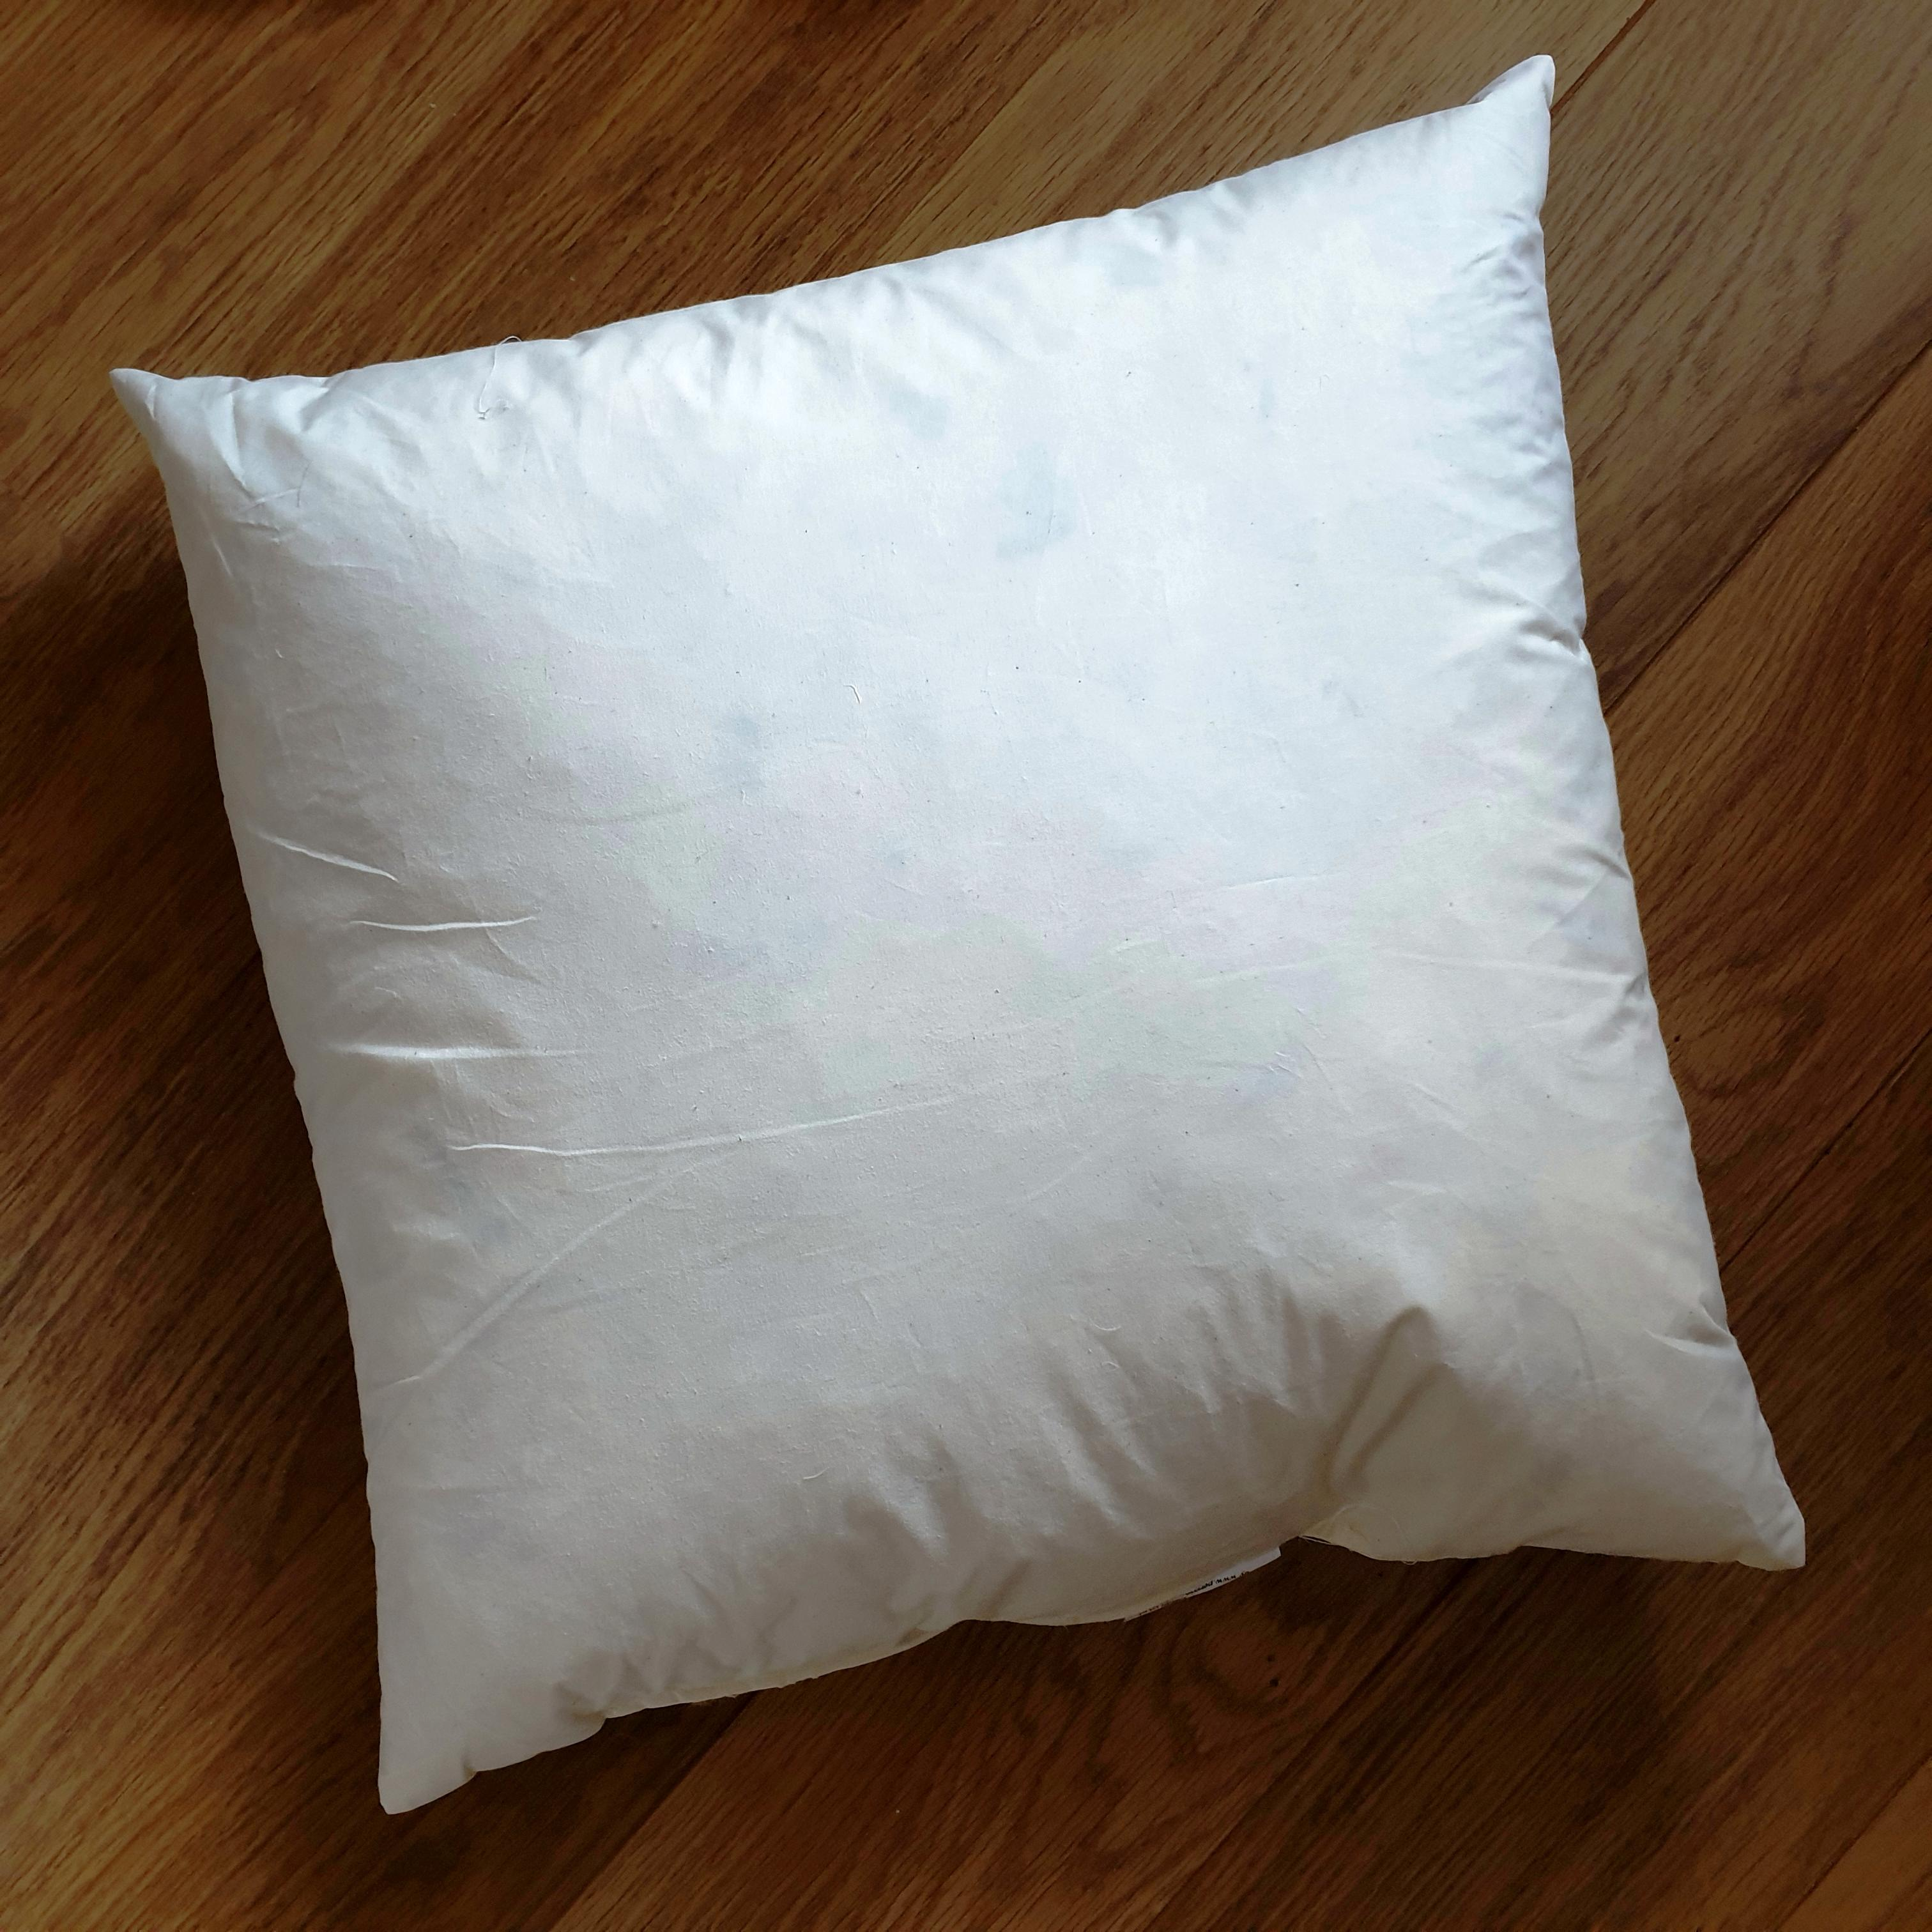 50cm cushion inner pad generously filled with 85% white duck feathers and 15% duck down in ecru cream 100% cotton outer cover.